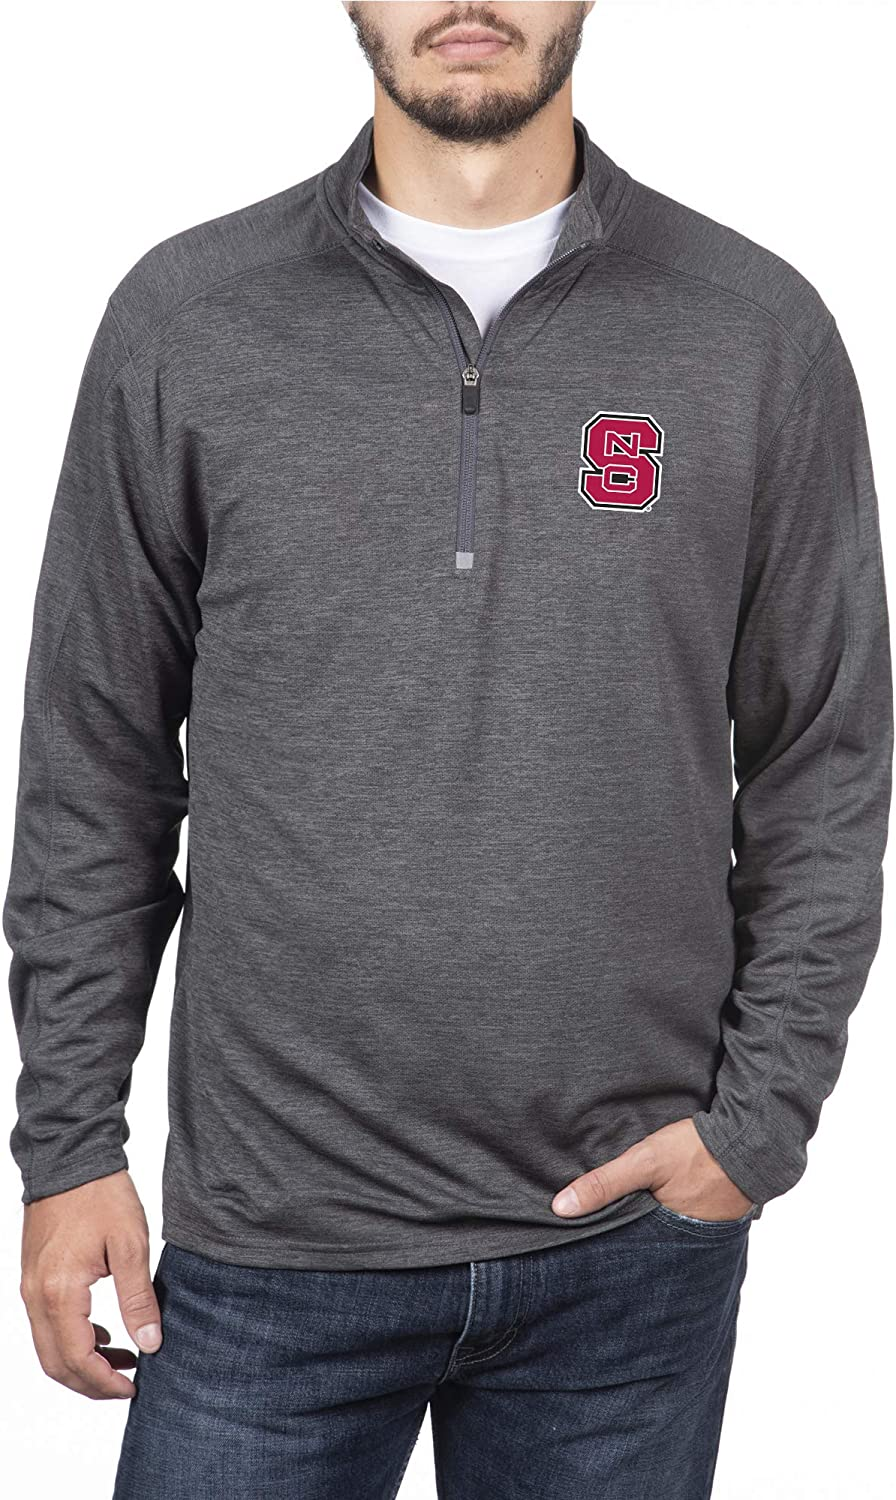 Top of the World Mens Dark Heathered Poly Half Zip Pullover